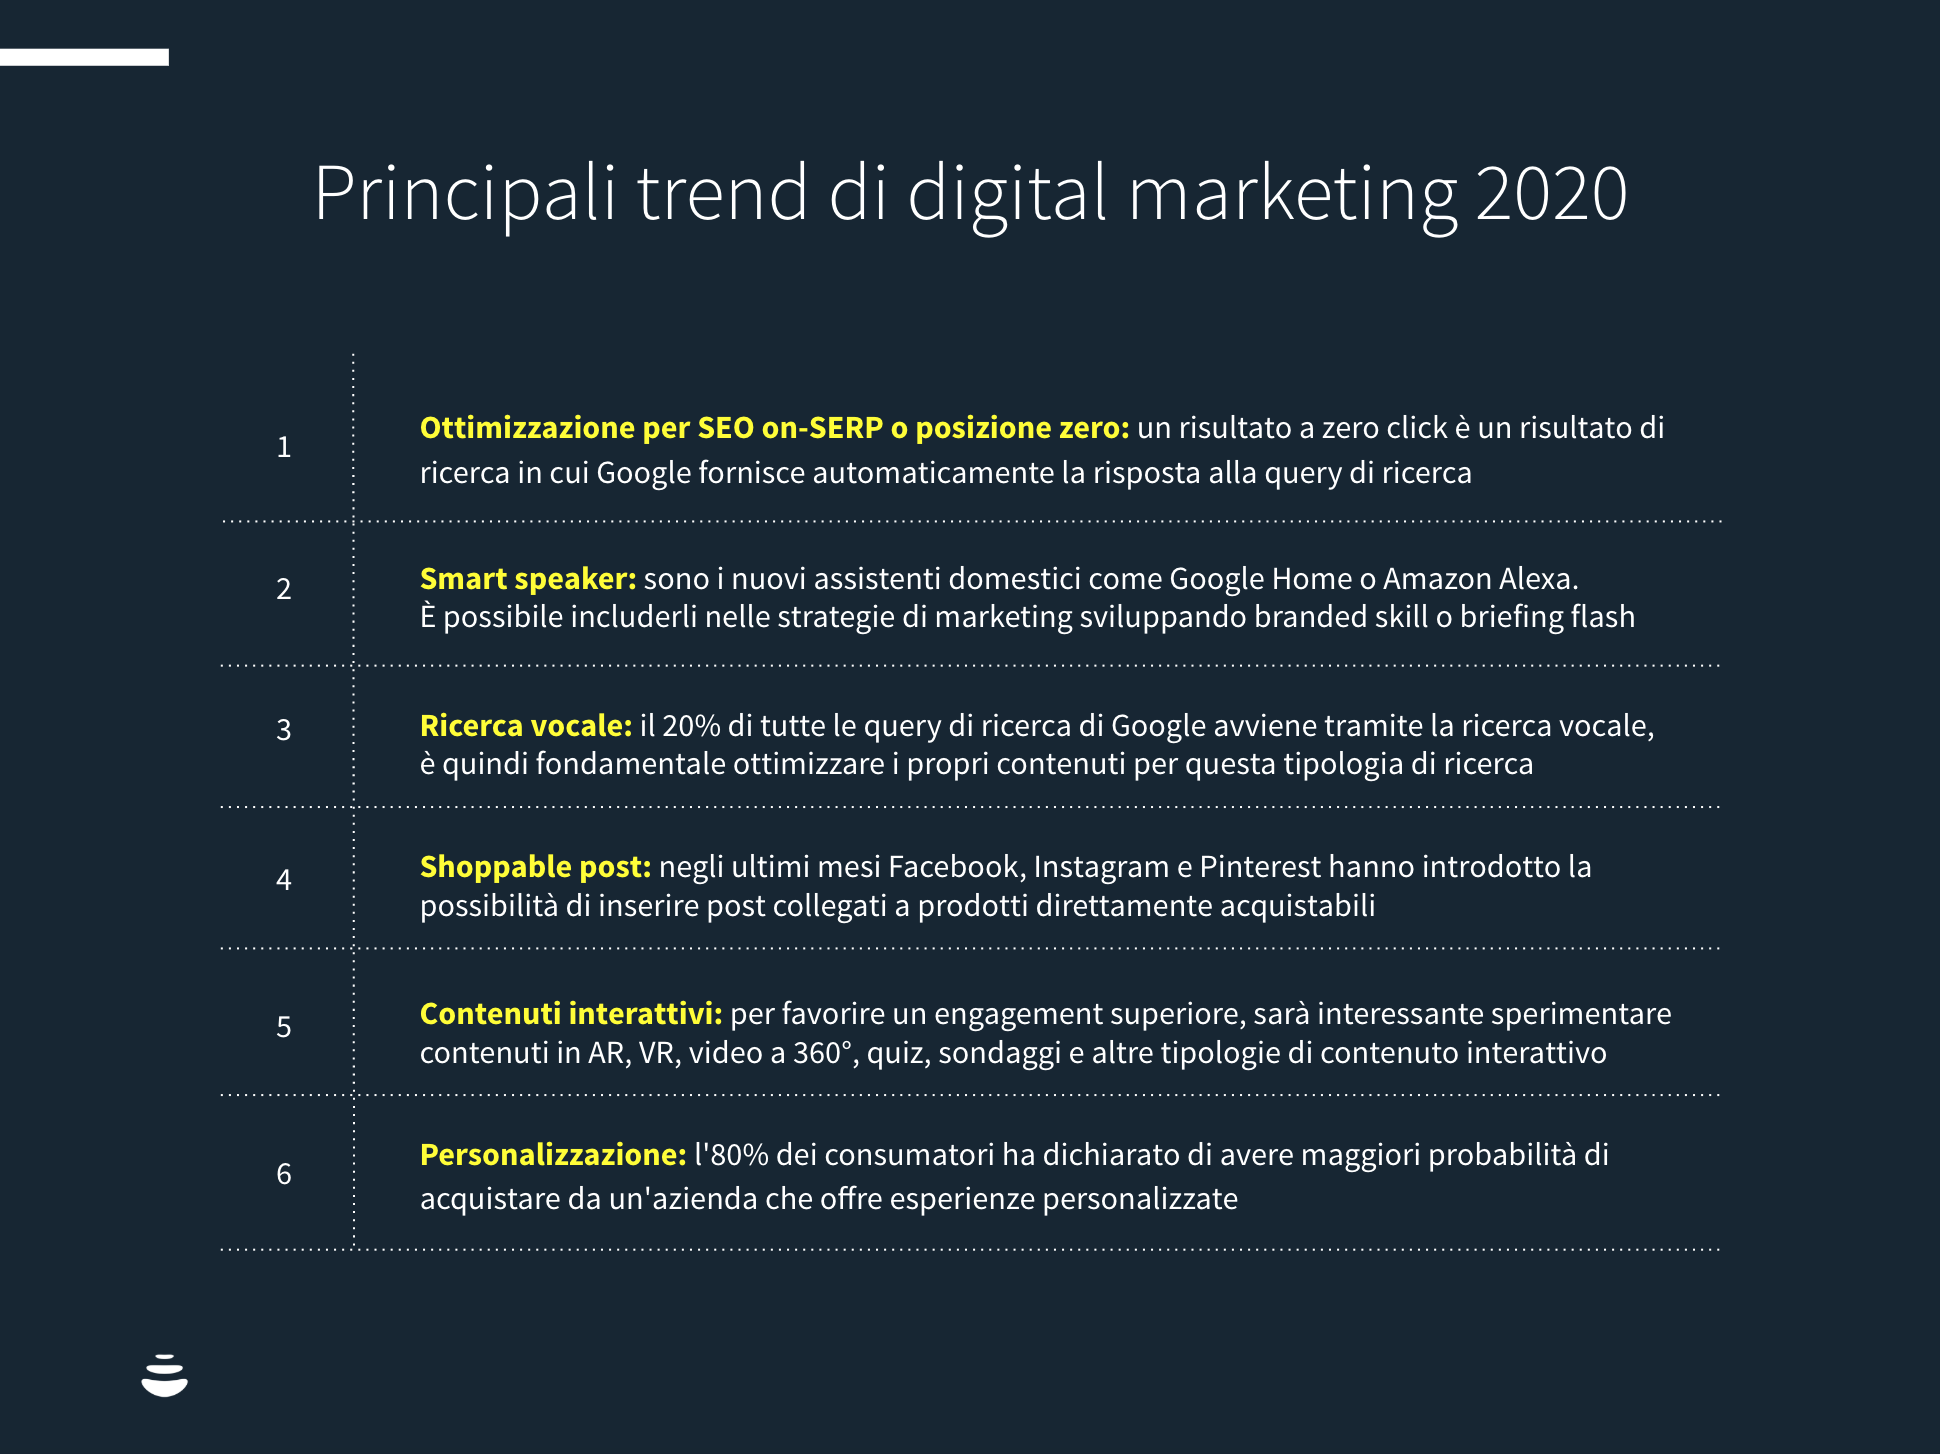 digital_marketing_trend_2020-1